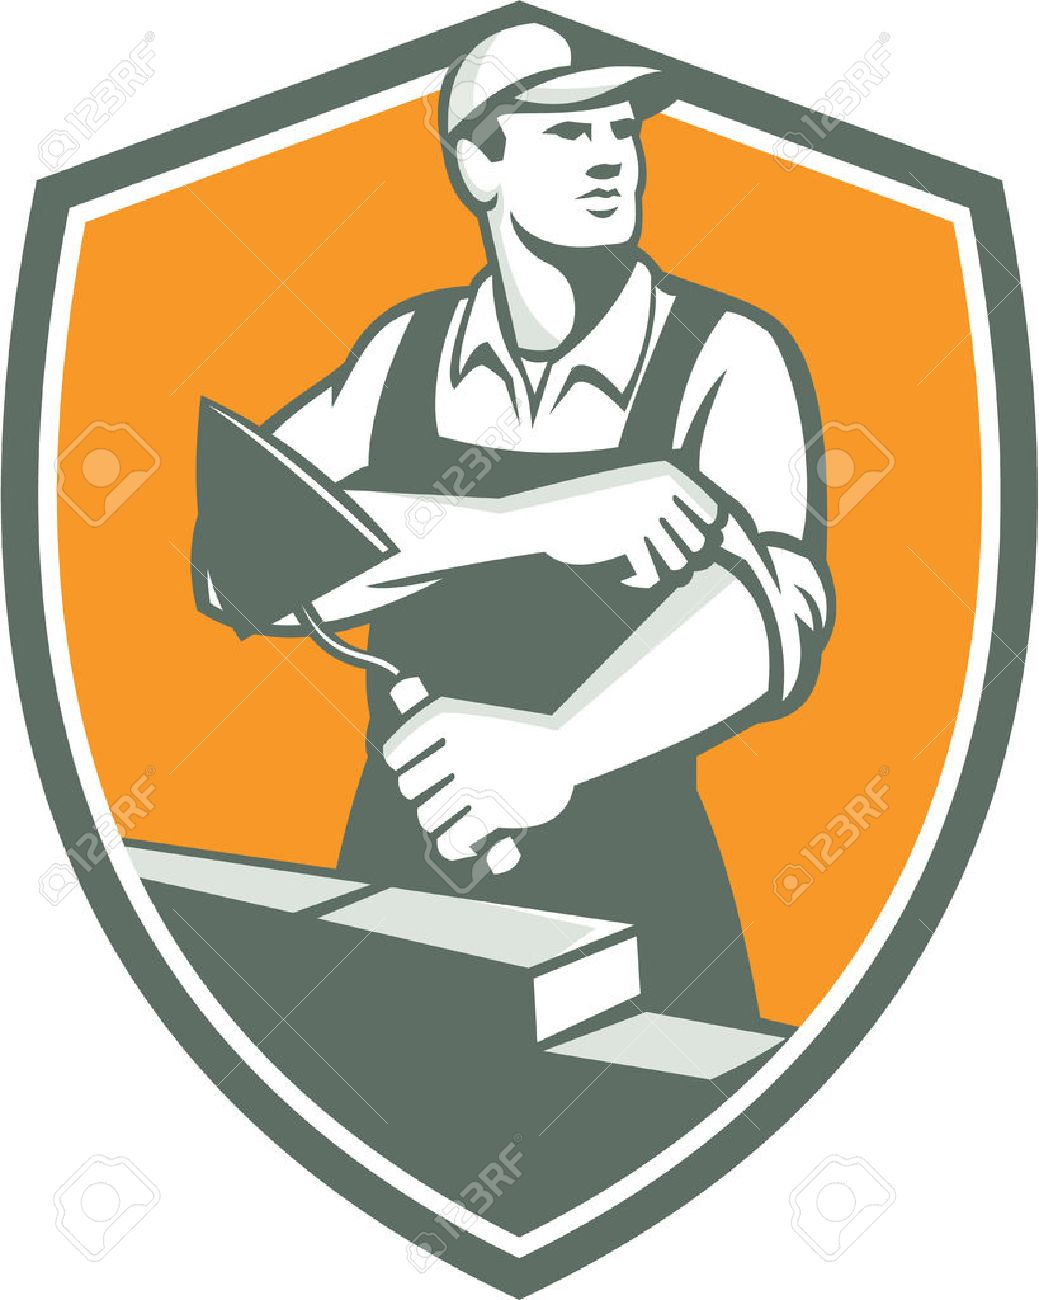 Illustration of a tiler plasterer mason masonry construction worker with trowel rolling sleeve looking to the side set inside shield done in retro style. Stock Vector - 37313568